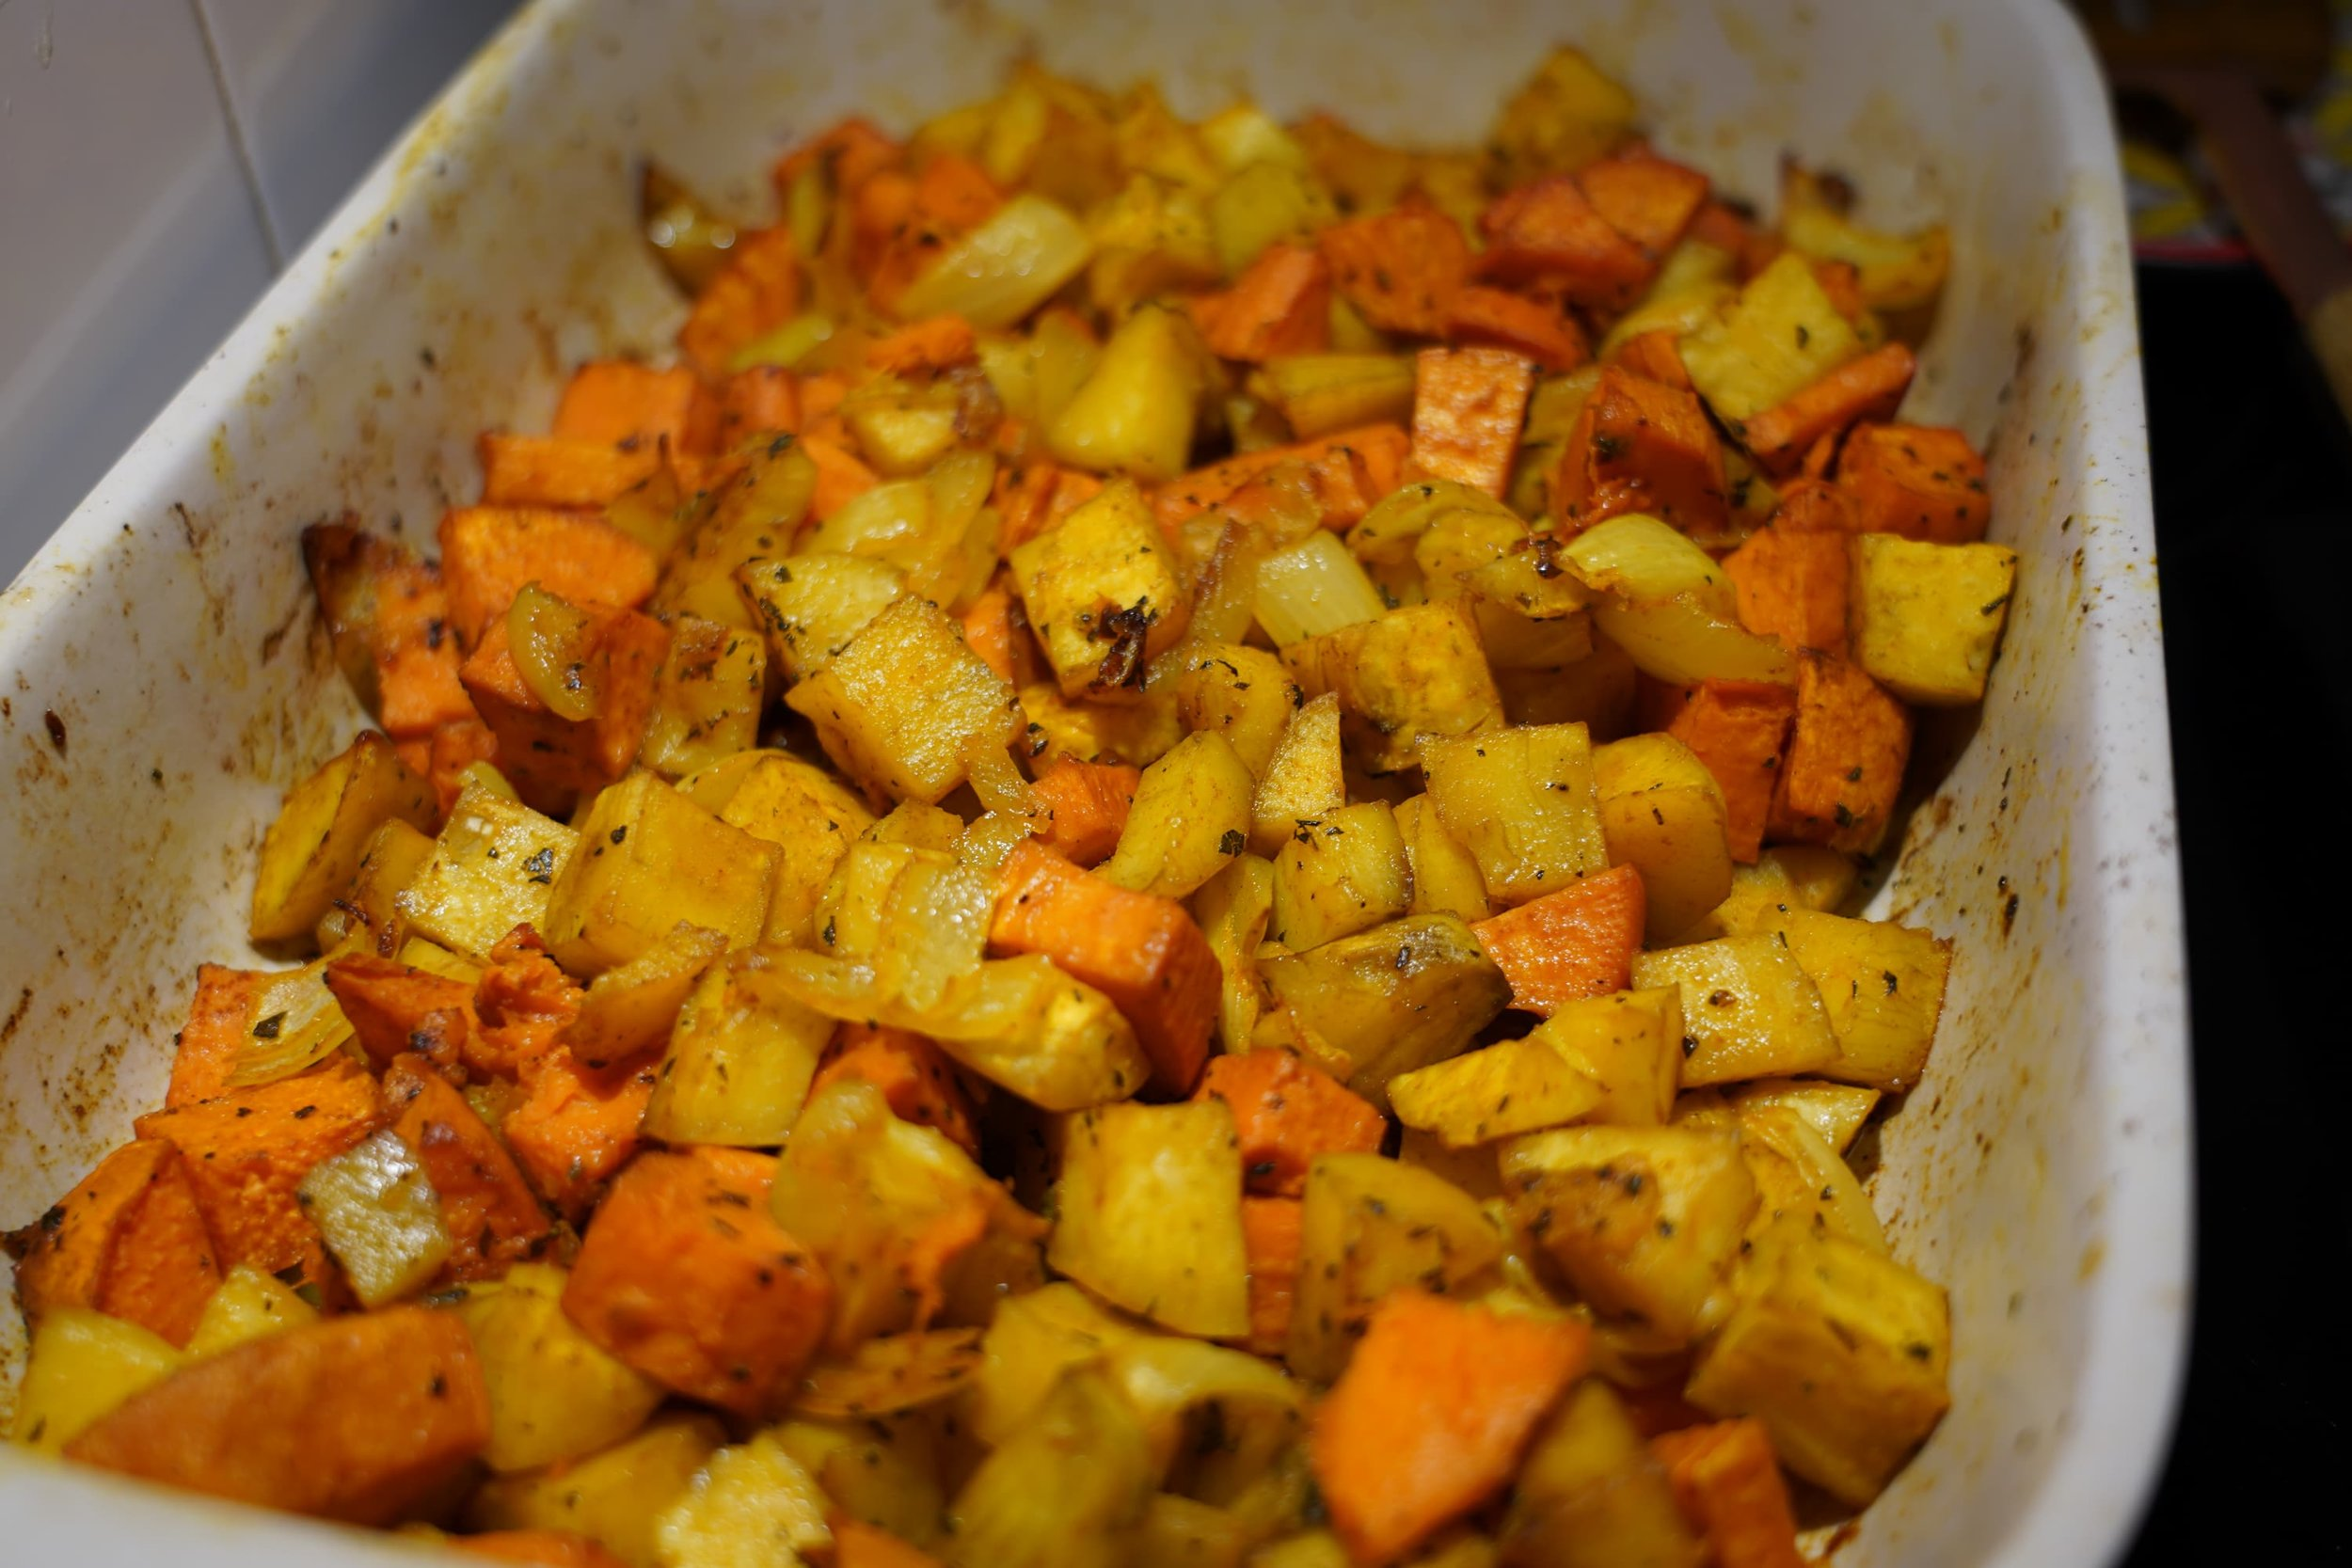 Two varieties of heirloom sweet potatoes and Kabocha squash roasted together (this was the first thing baked to free up the oven for the turkeys).